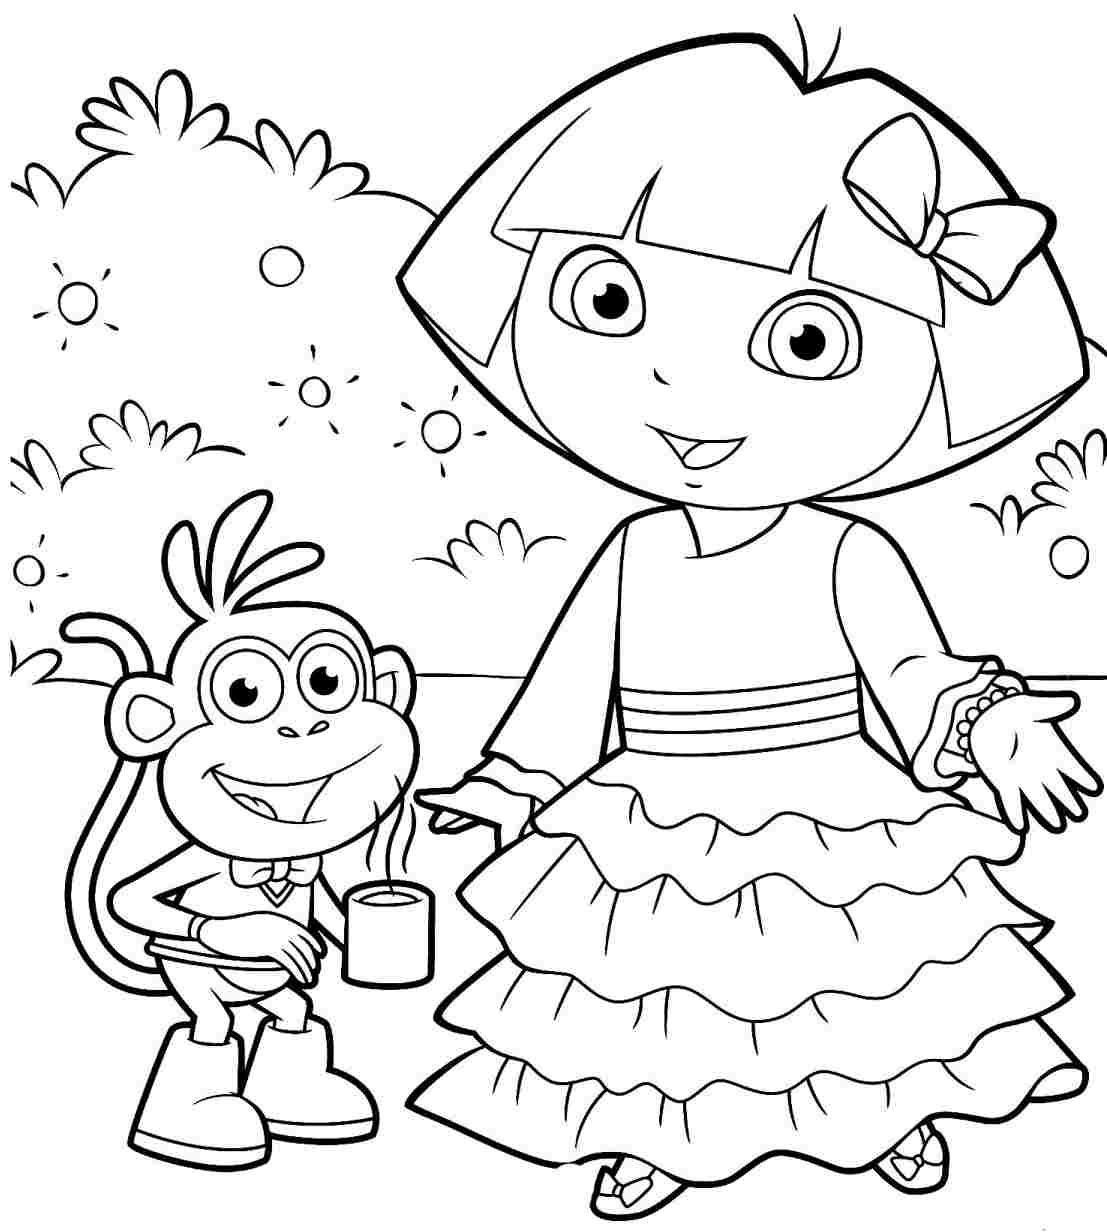 dora coloring pages to print dora christmas coloring pages 12 printable coloring sheets pages to dora print coloring